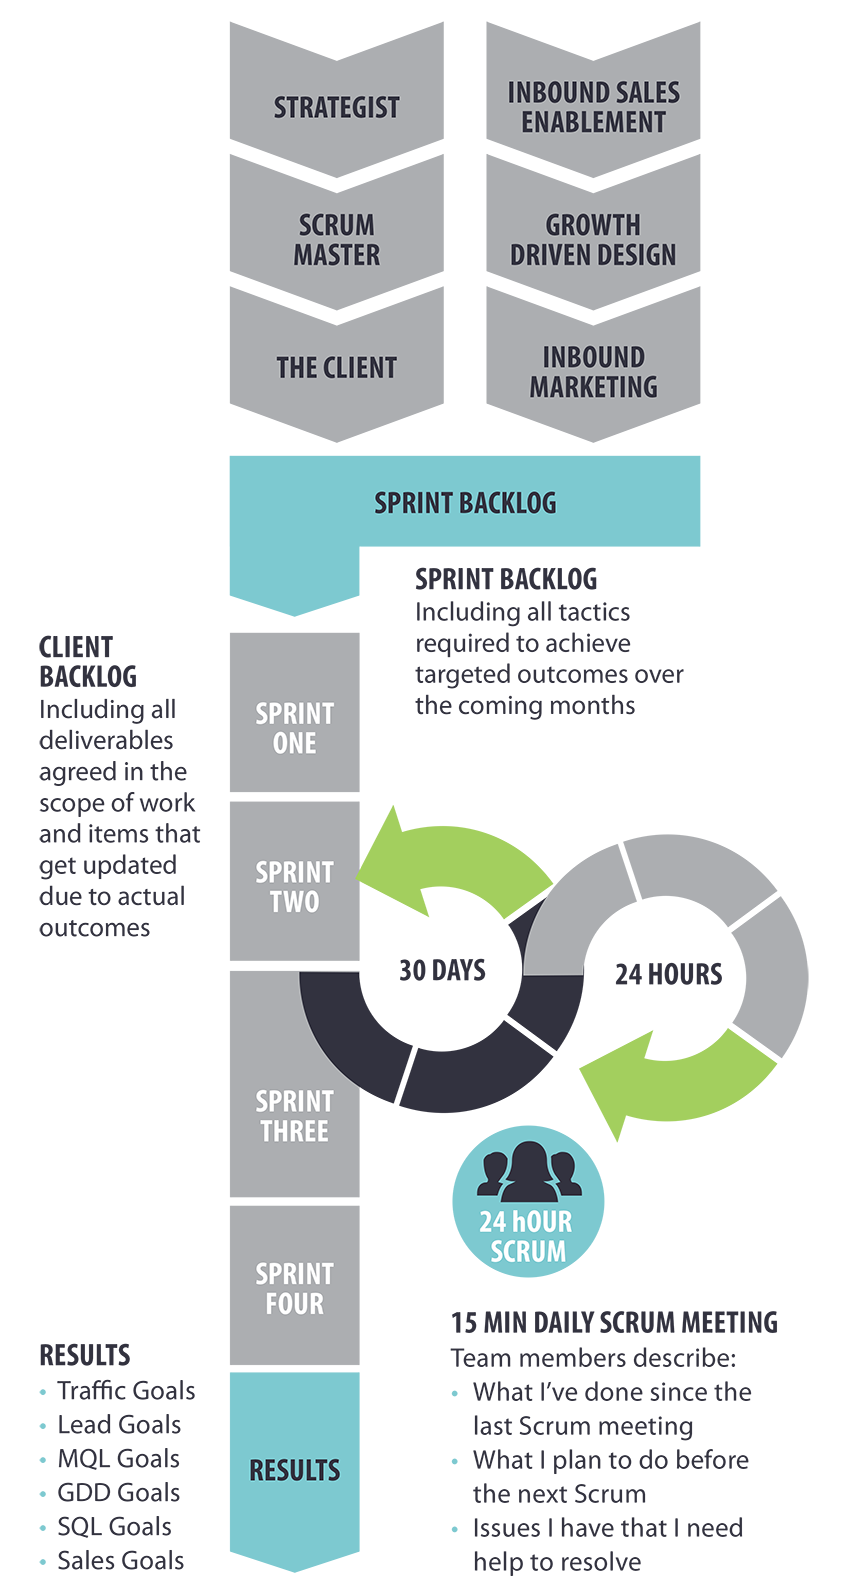 Agile Scrum Process for Inbound Marketing